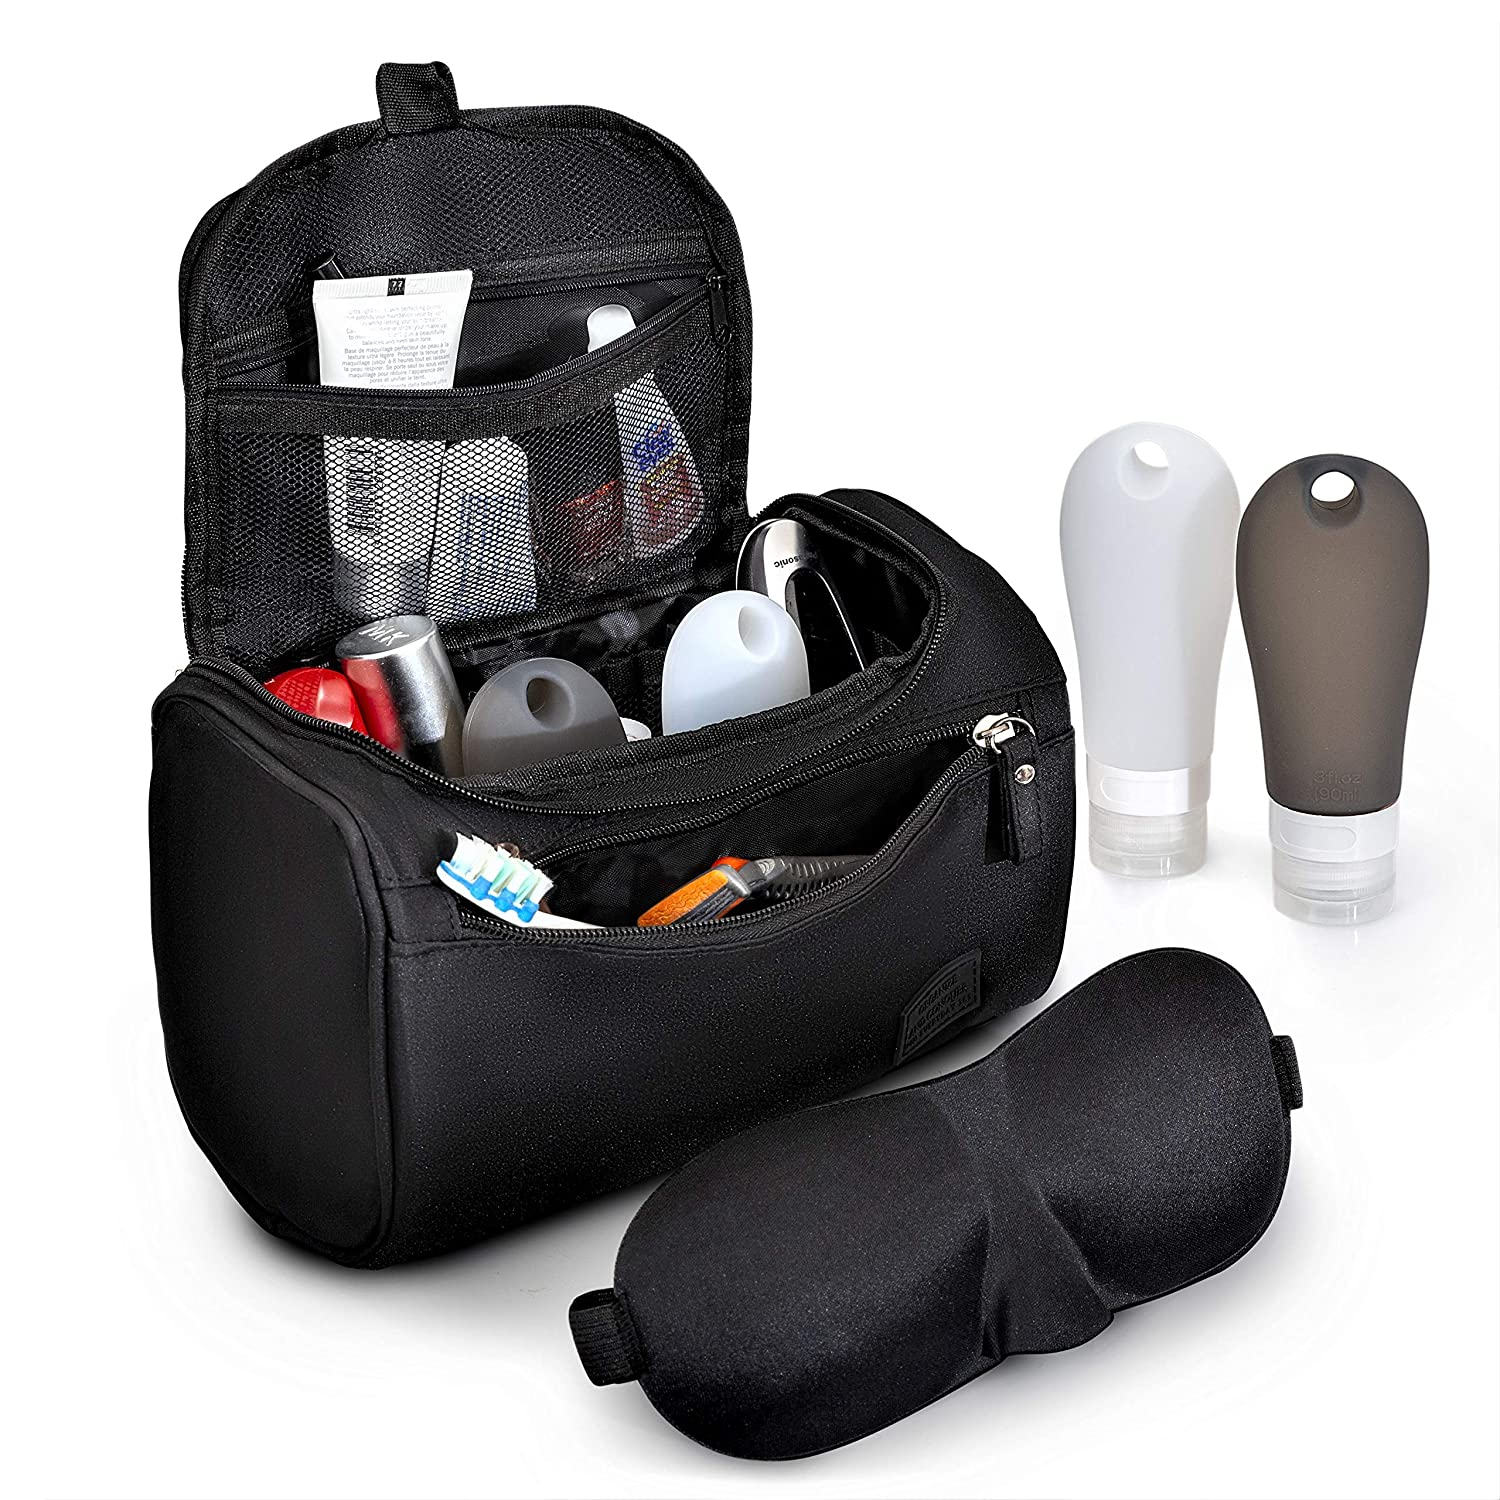 Toiletry Bag For Men And Women [Small Size] – Water Resistant Organizer For Makeup, Cosmetics, Hygiene, Shaving & Grooming Accessories |Bonus Items – Two 3oz (90mL) Travel Bottles – 3D Eye Mask| Organize and Conquer Supplies